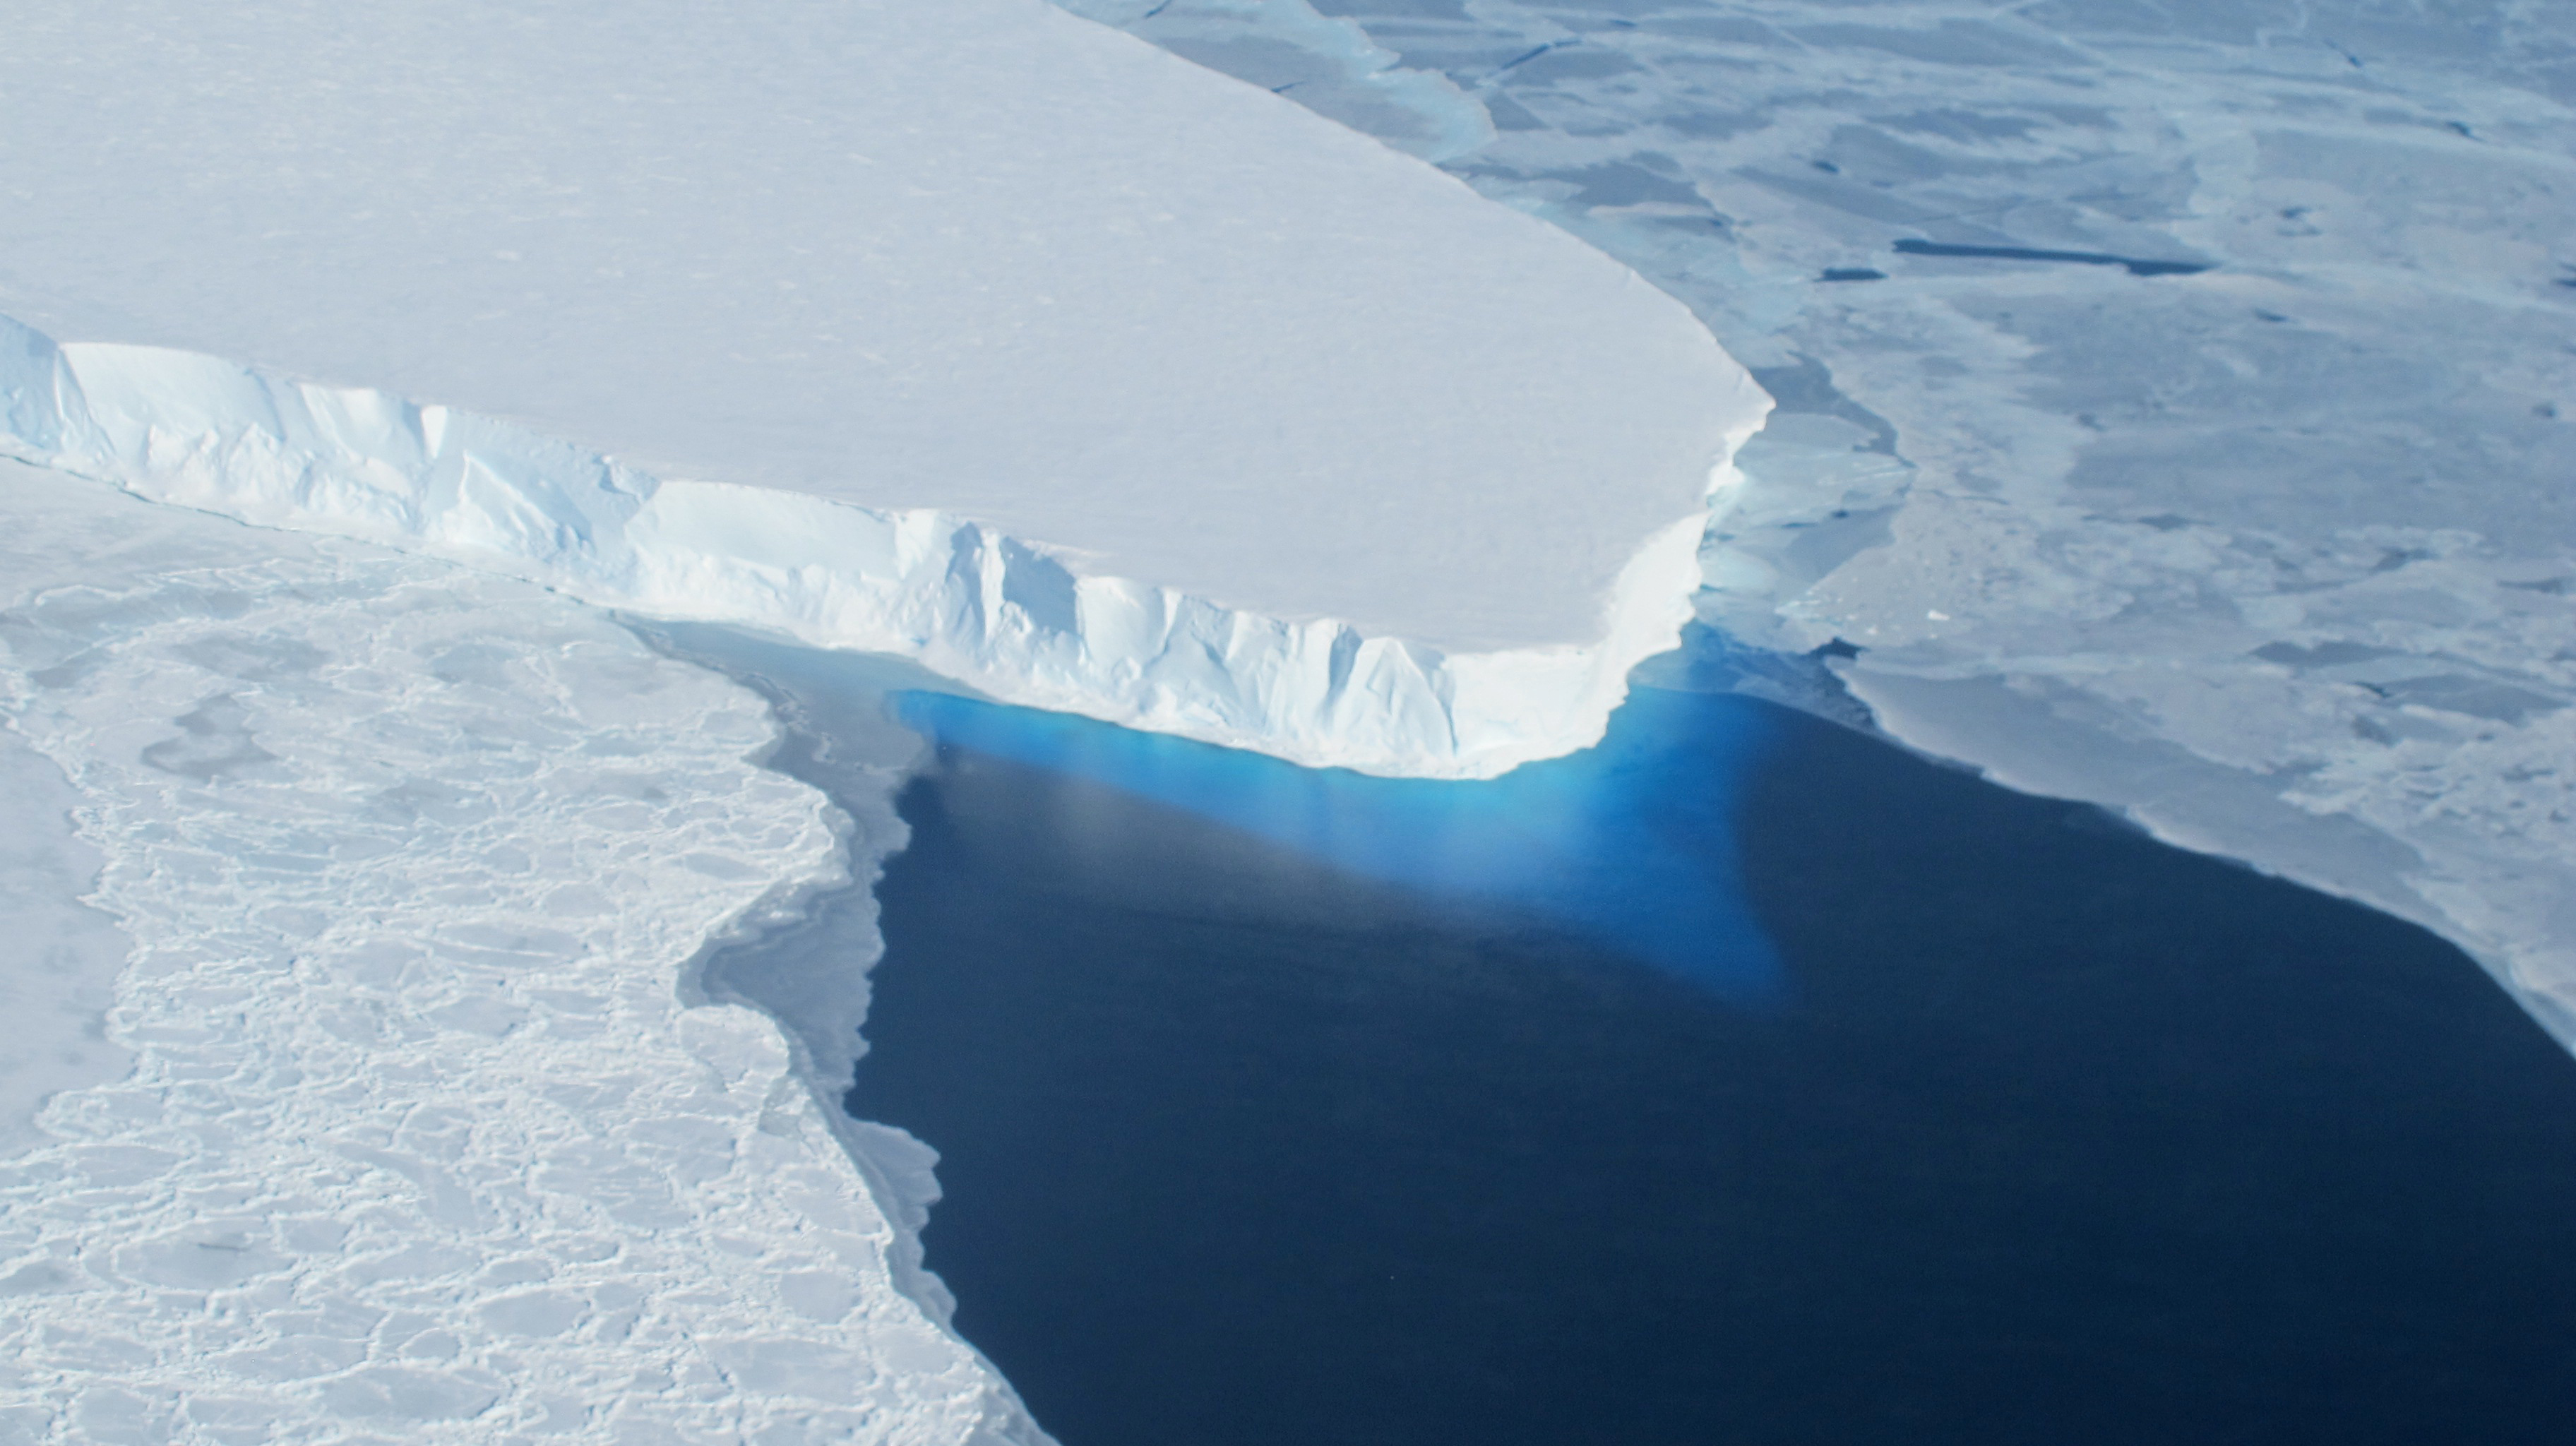 Antarctic ice sheet is melting which may cause global sea level rise